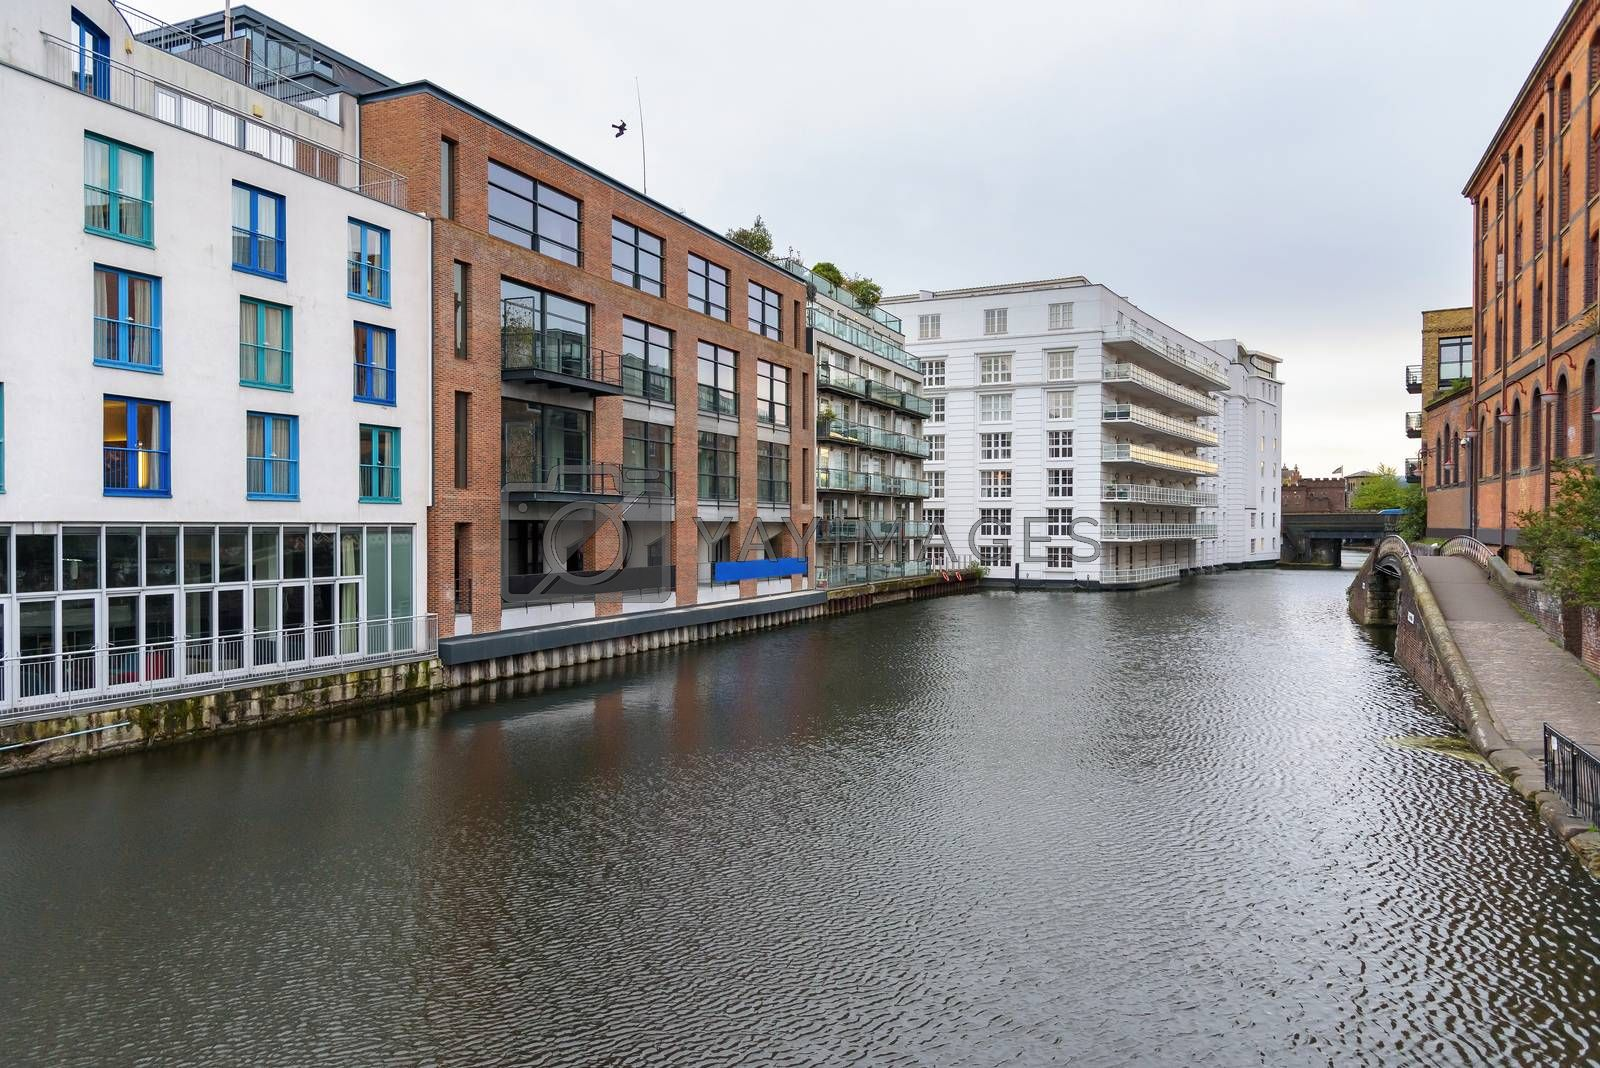 Royalty free image of Regents Canal in Camden Town by mkos83